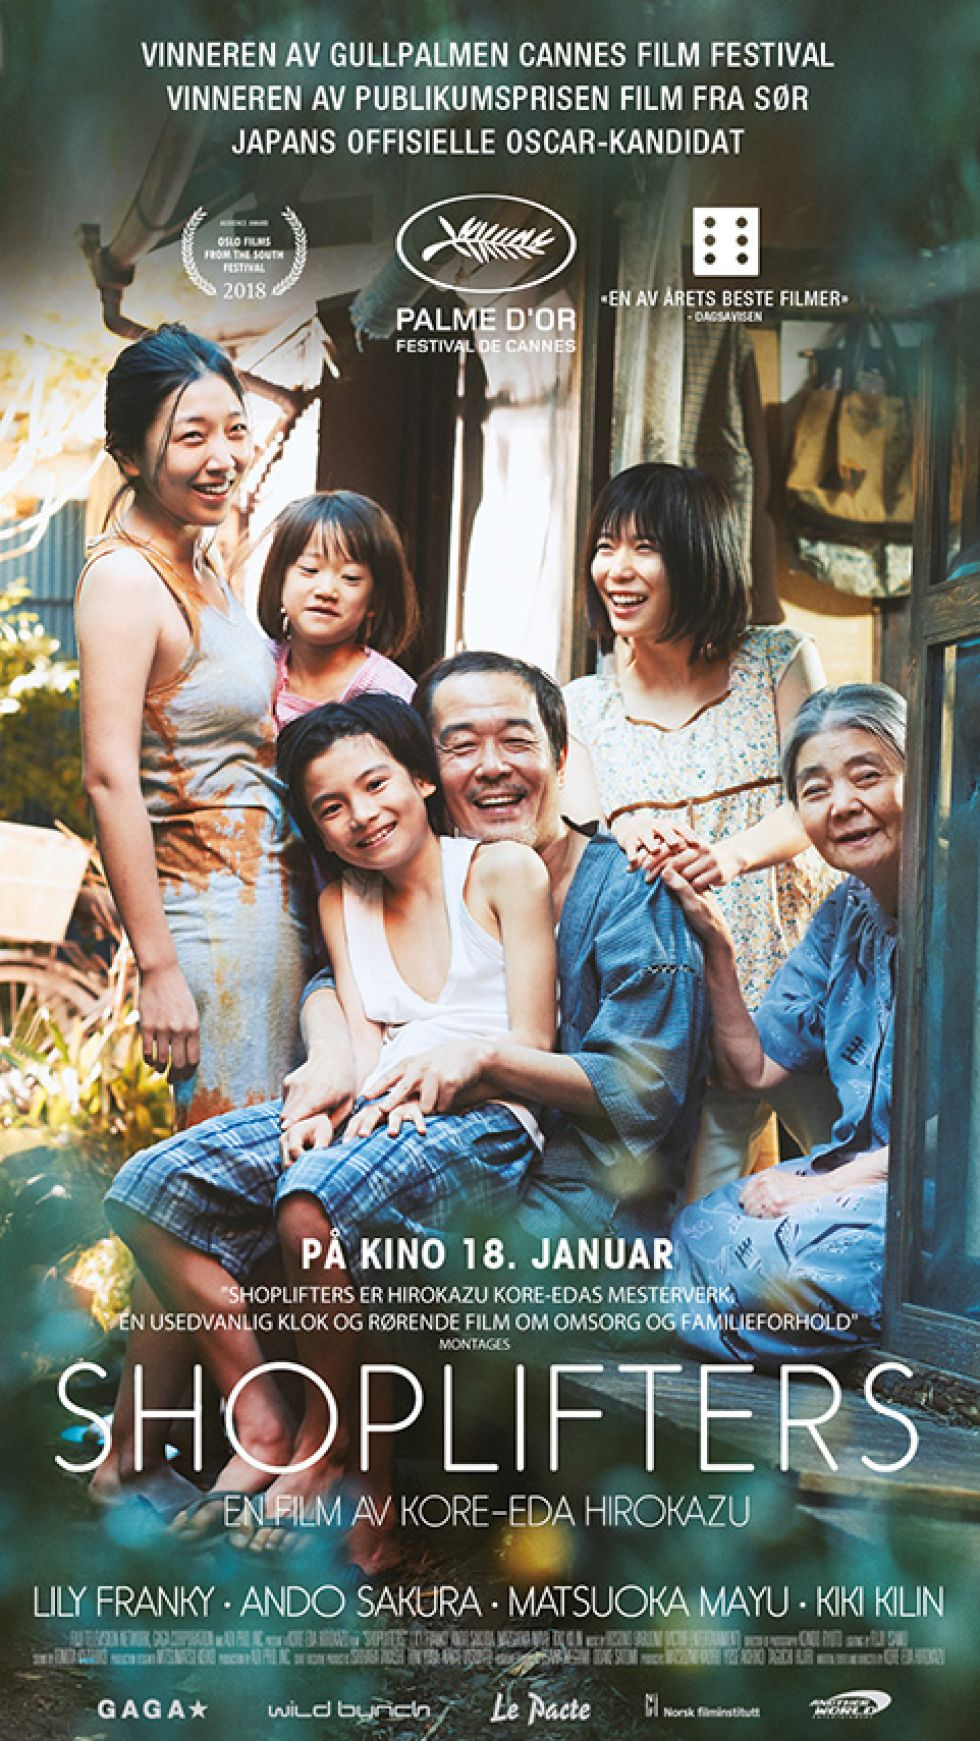 OSCARkino: Shoplifters